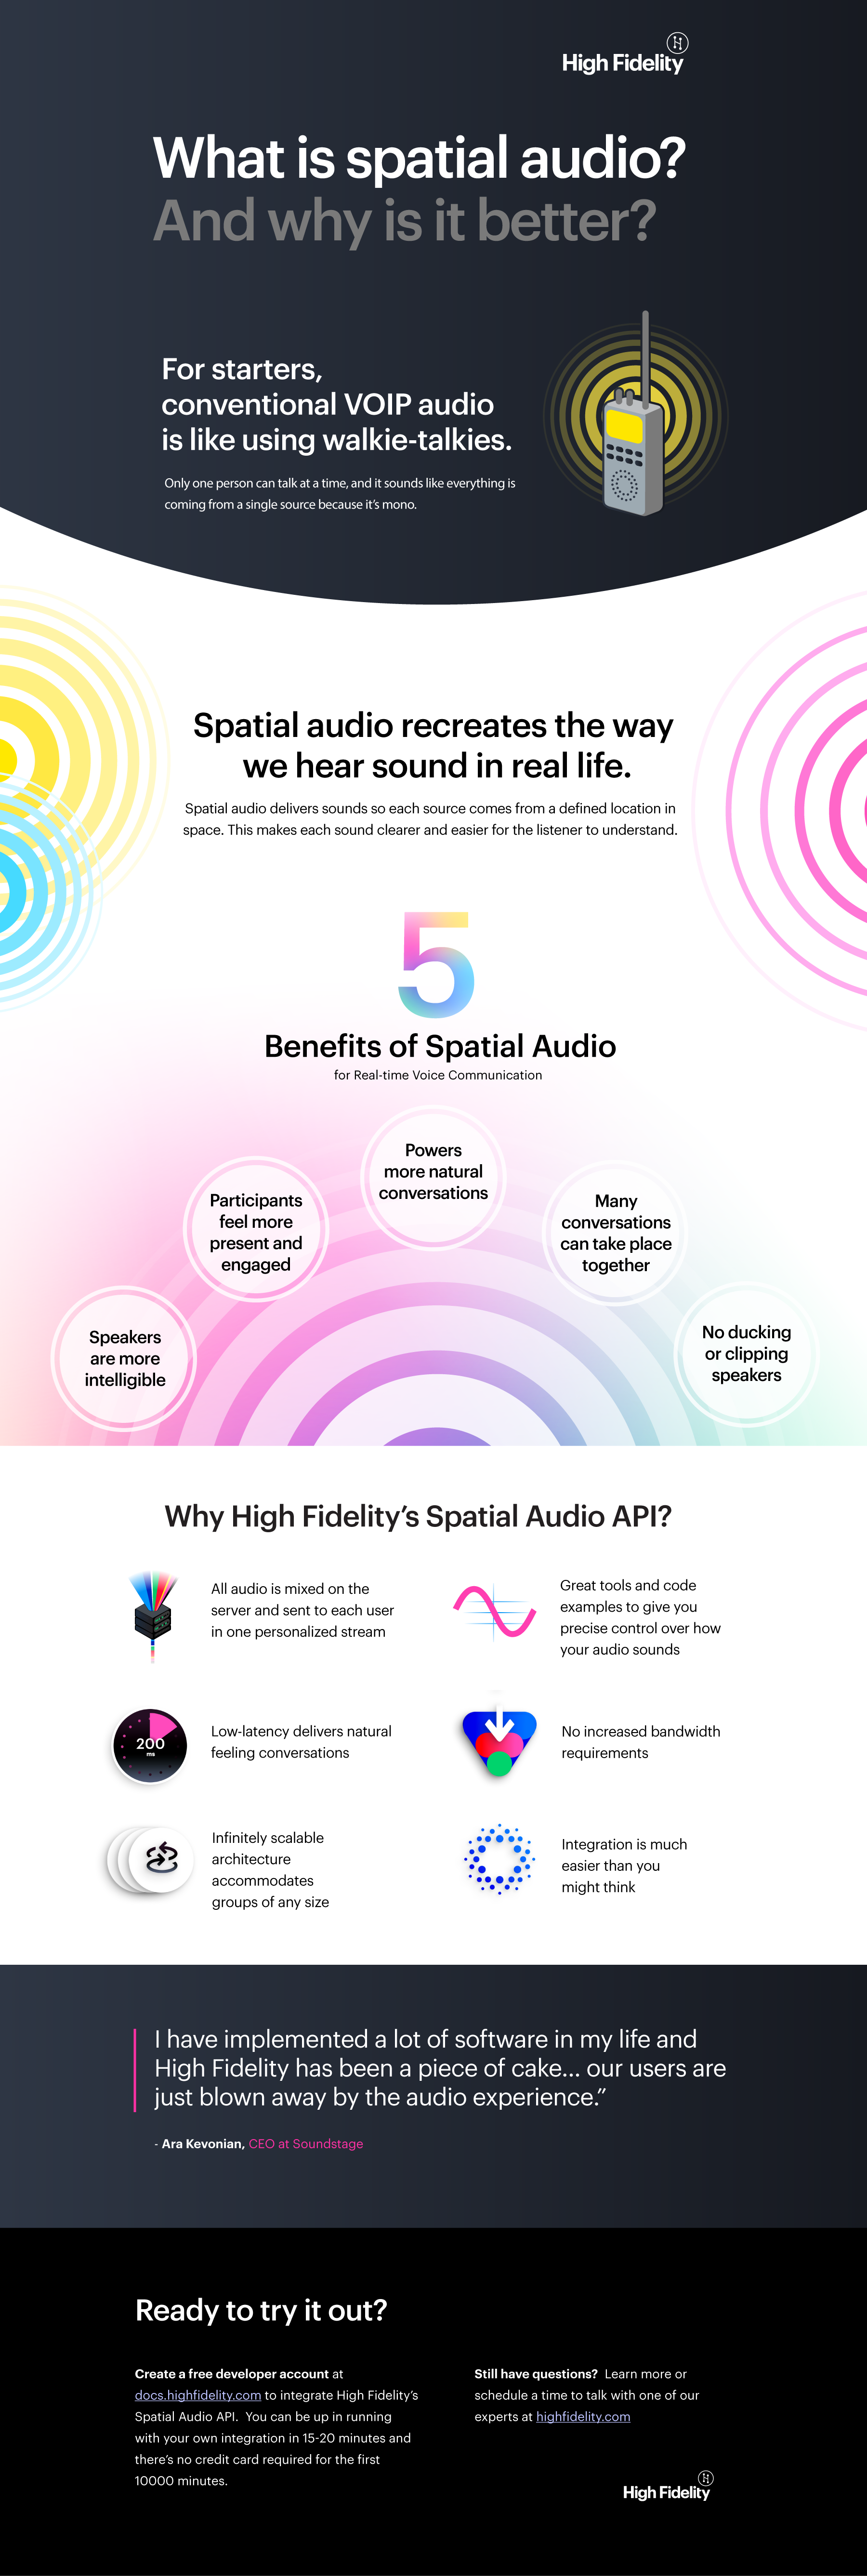 Large infographic describing the benefits of spatial audio and the advantages of using High Fidelity's API